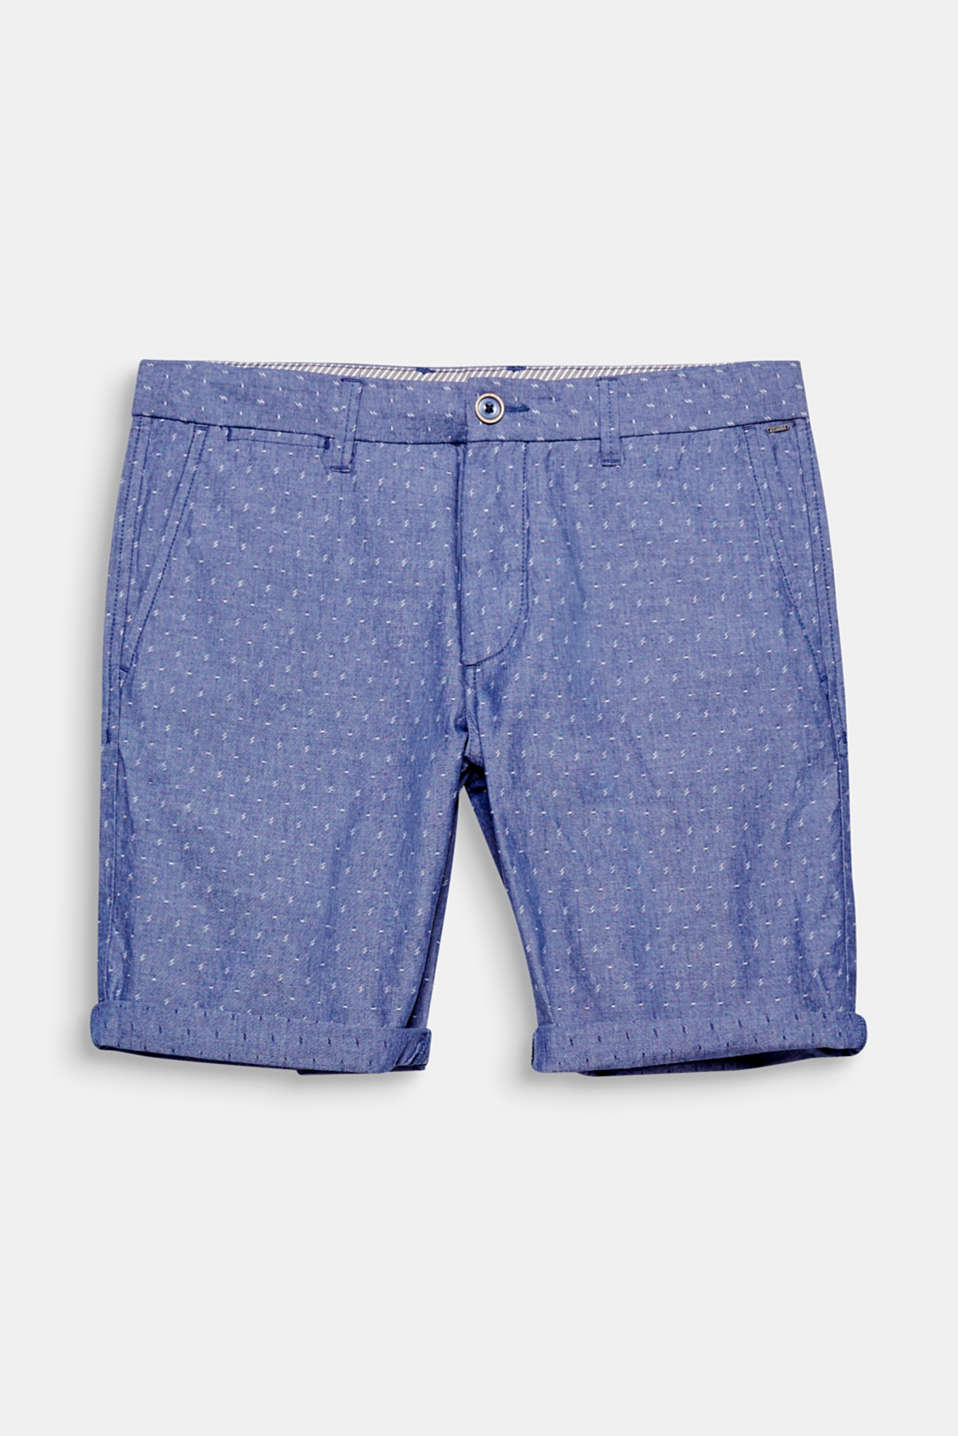 For the modern casual look: These chambray shorts will give your summer styling a distinctive individual touch!